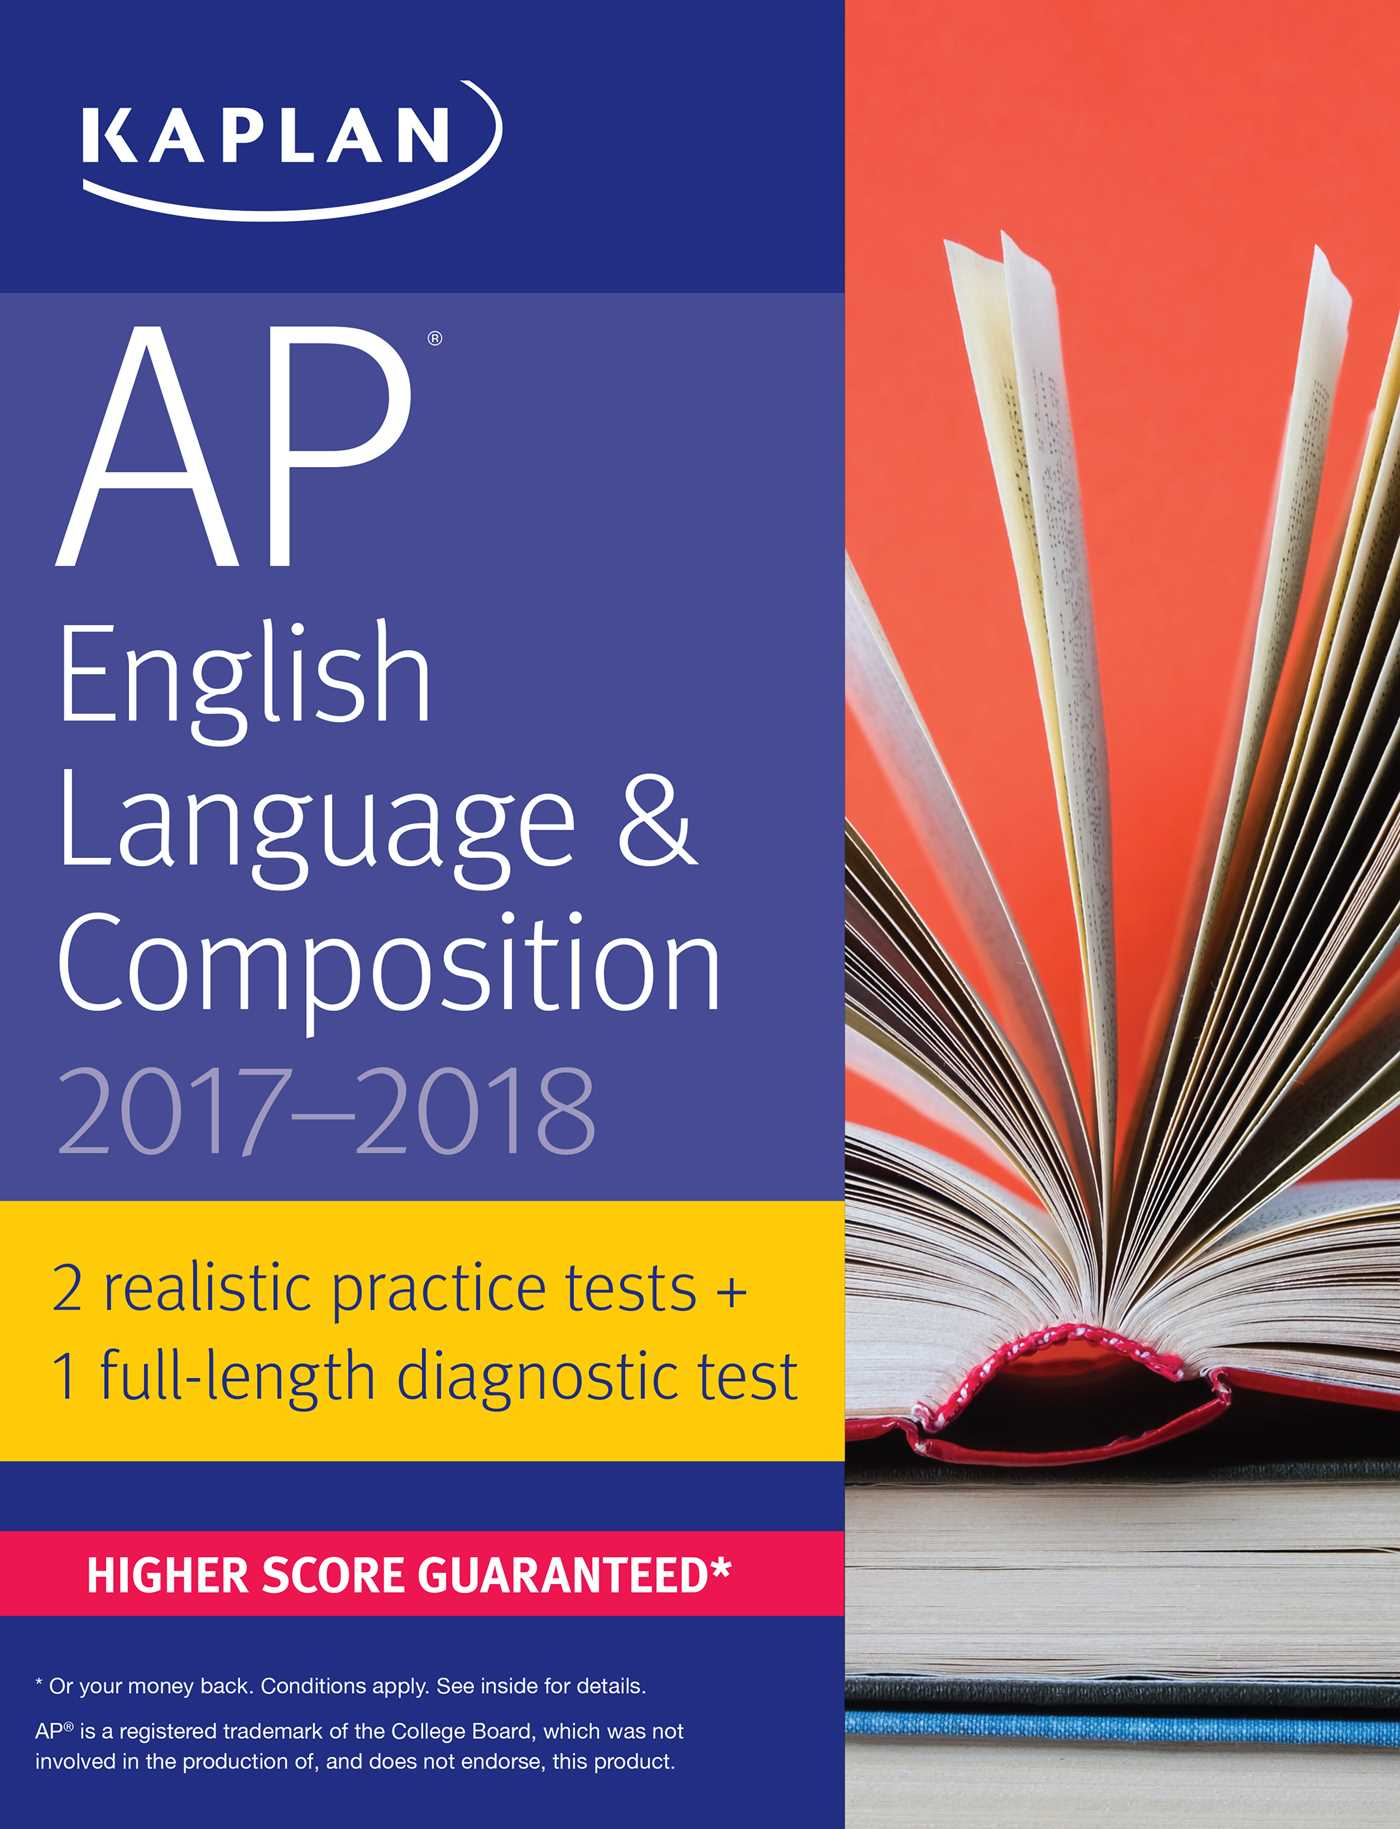 ap english language Ap digital edge downloadable resources for ap english language & composition including lesson plans, student handouts, student word workbooks, and grading keys.